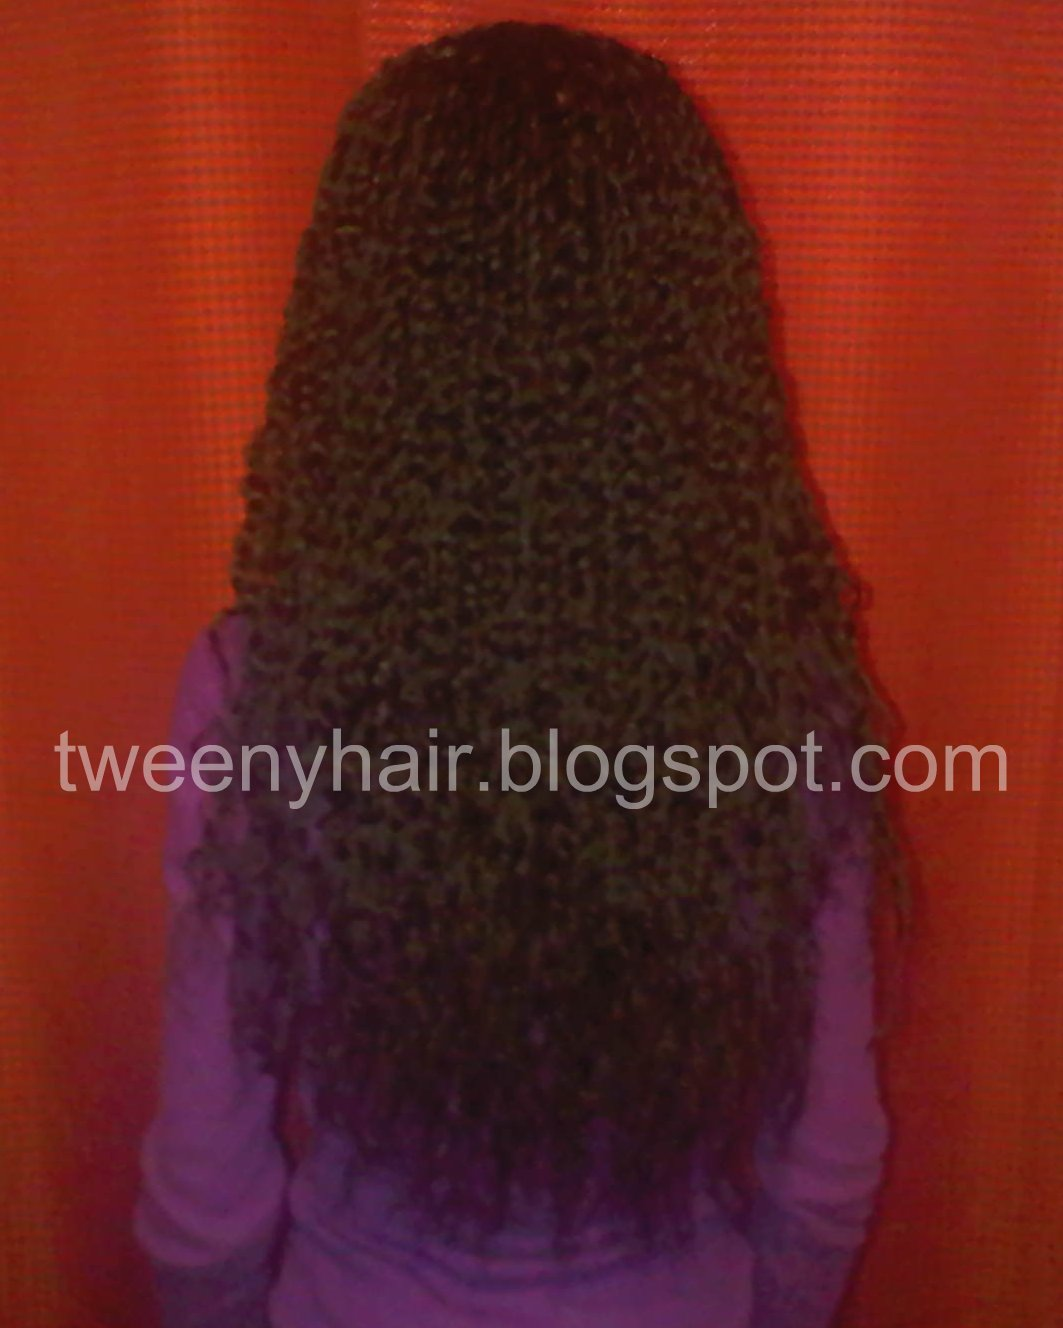 tweeny hair you can also find tweeny hair on facebook